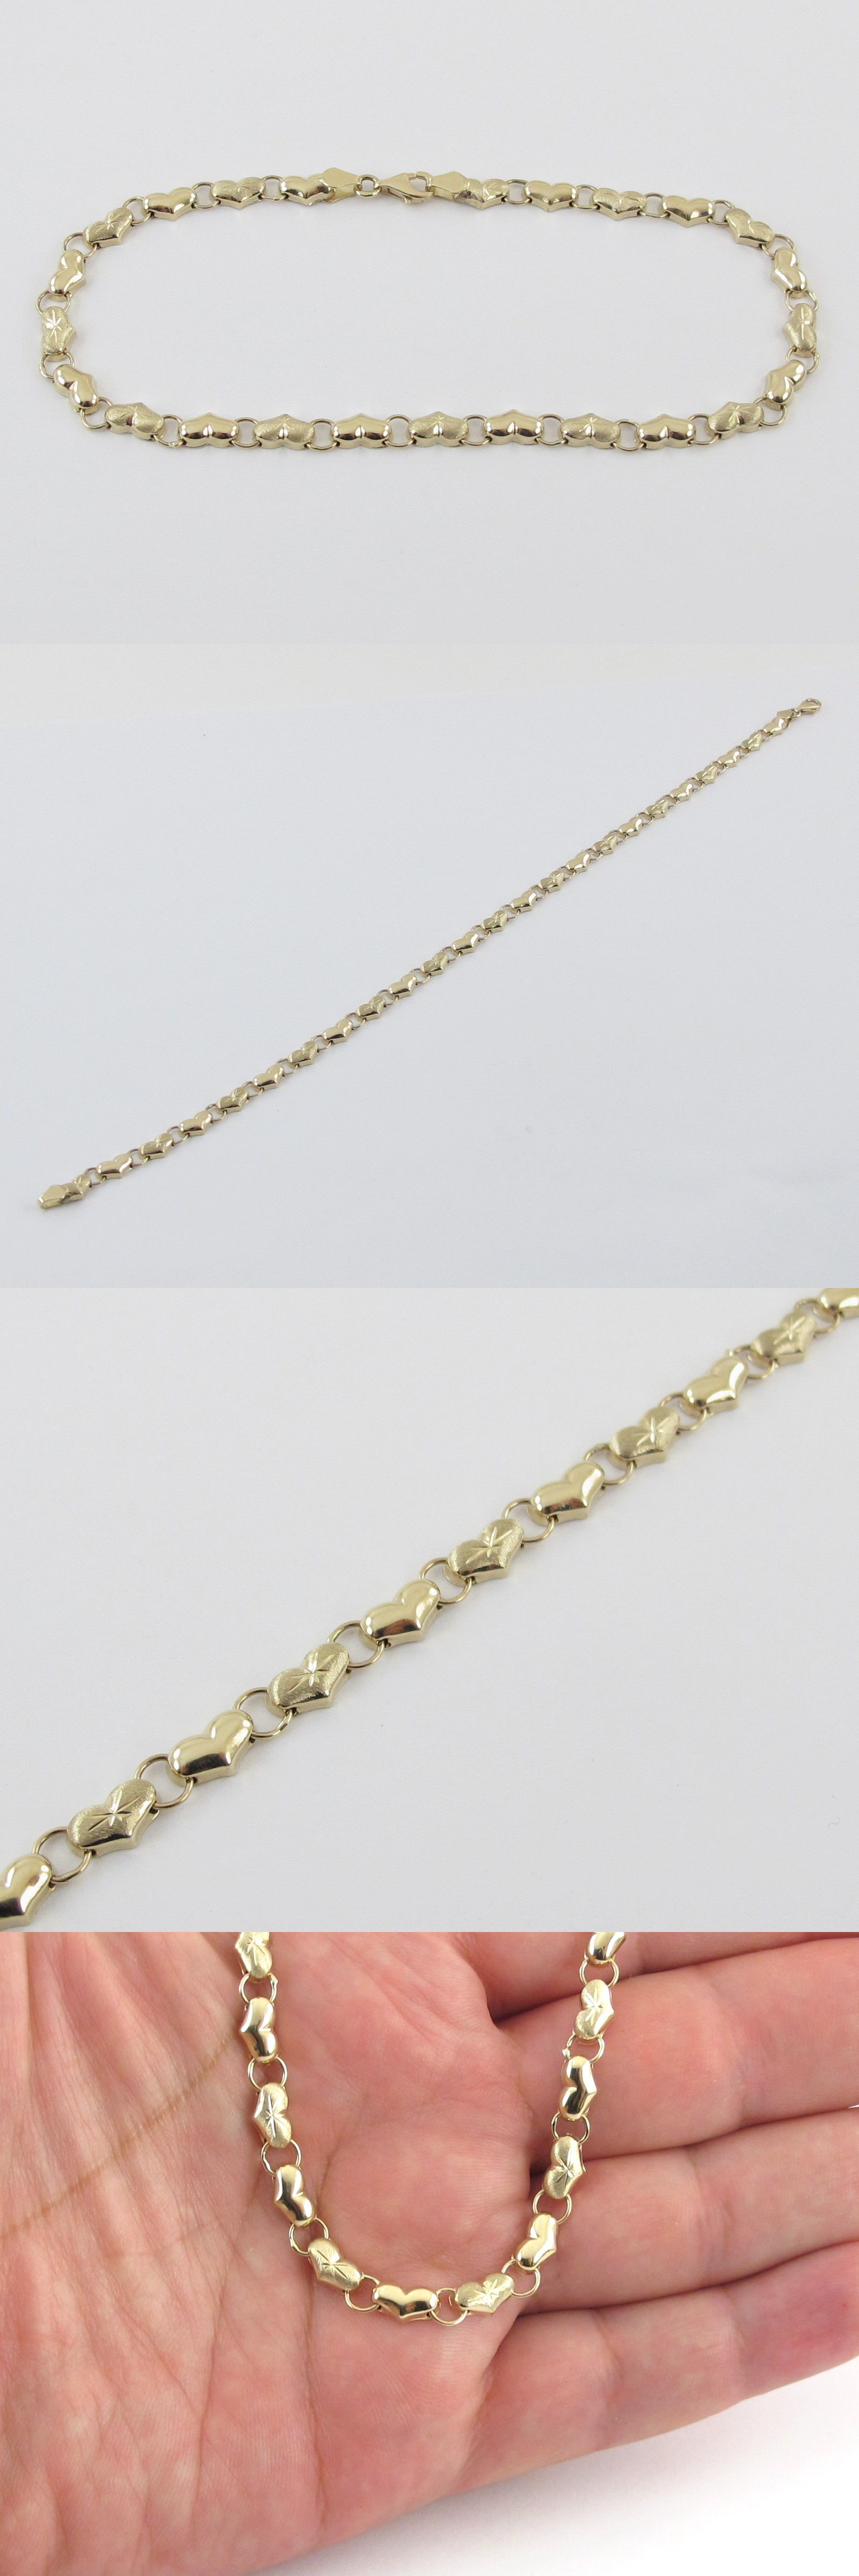 design vintage round diamond white in gold bracelet img wave bar anklet